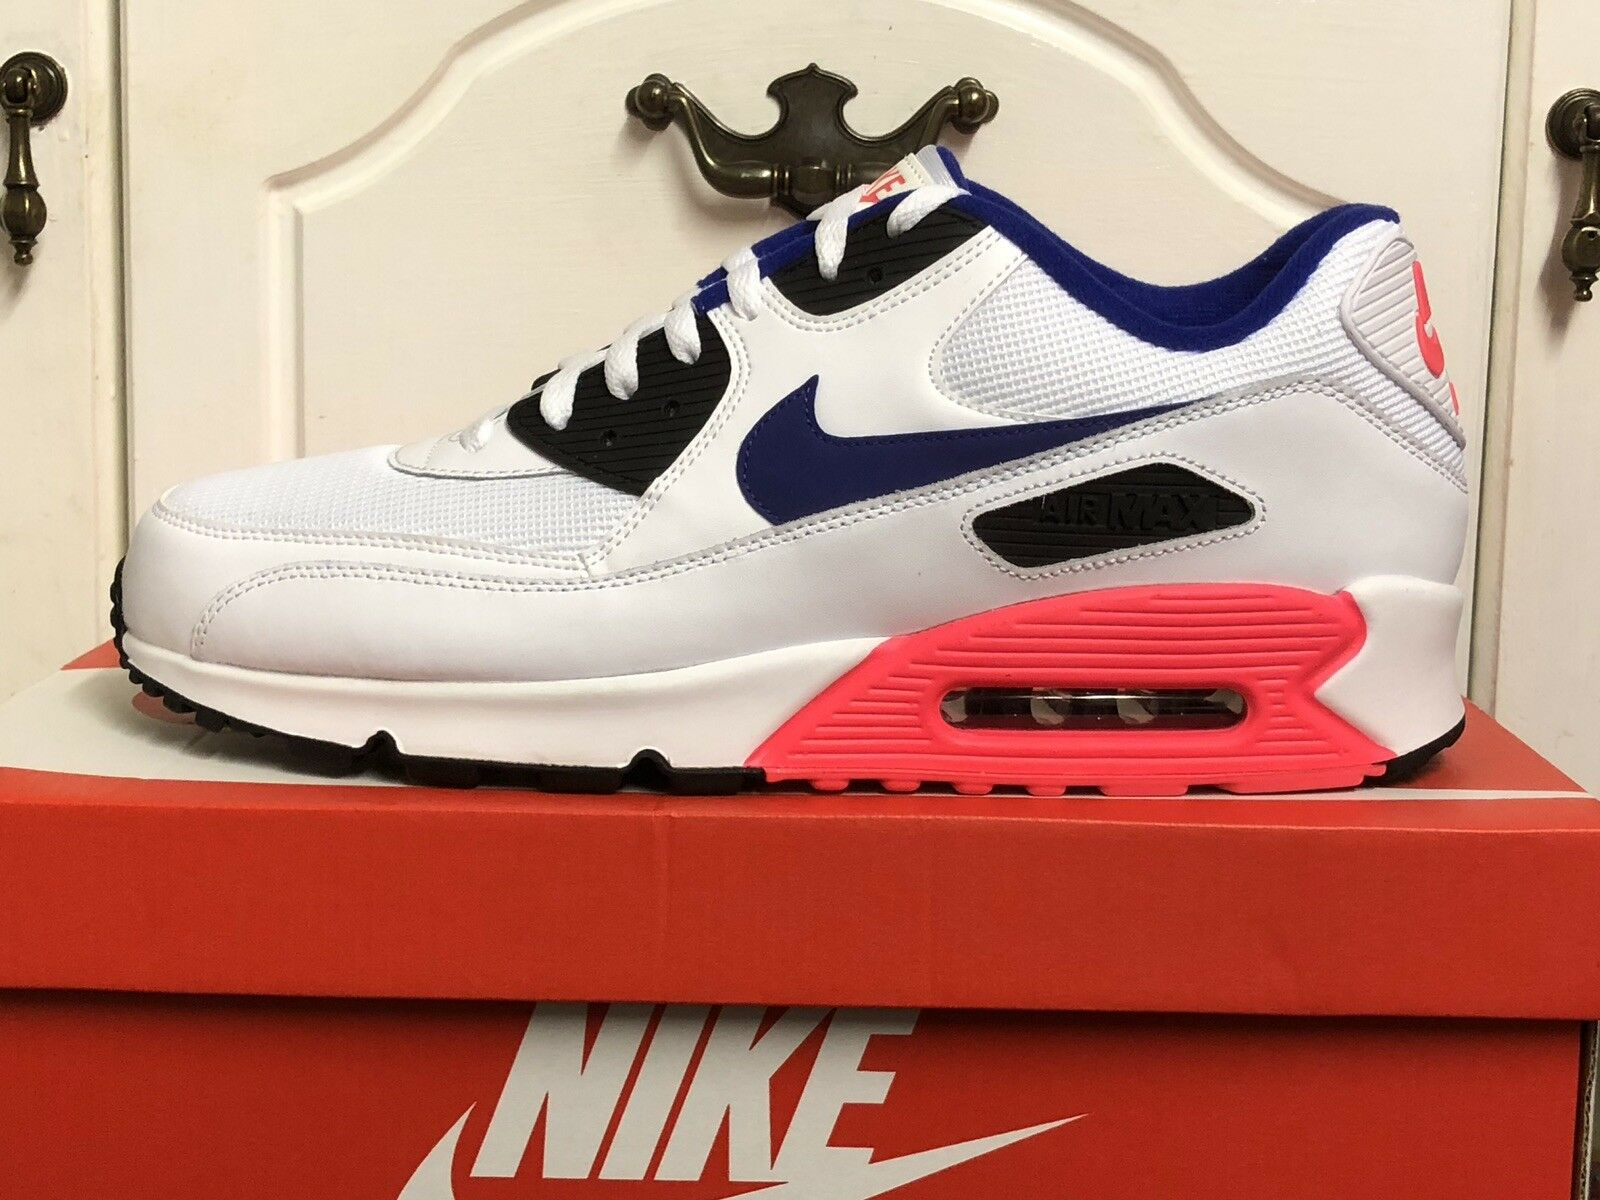 NIKE AIR AIR AIR MAX 90 ESSENTIAL TRAINERS Turnschuhe schuhe UK 13 EUR 48,5 US 14 860293